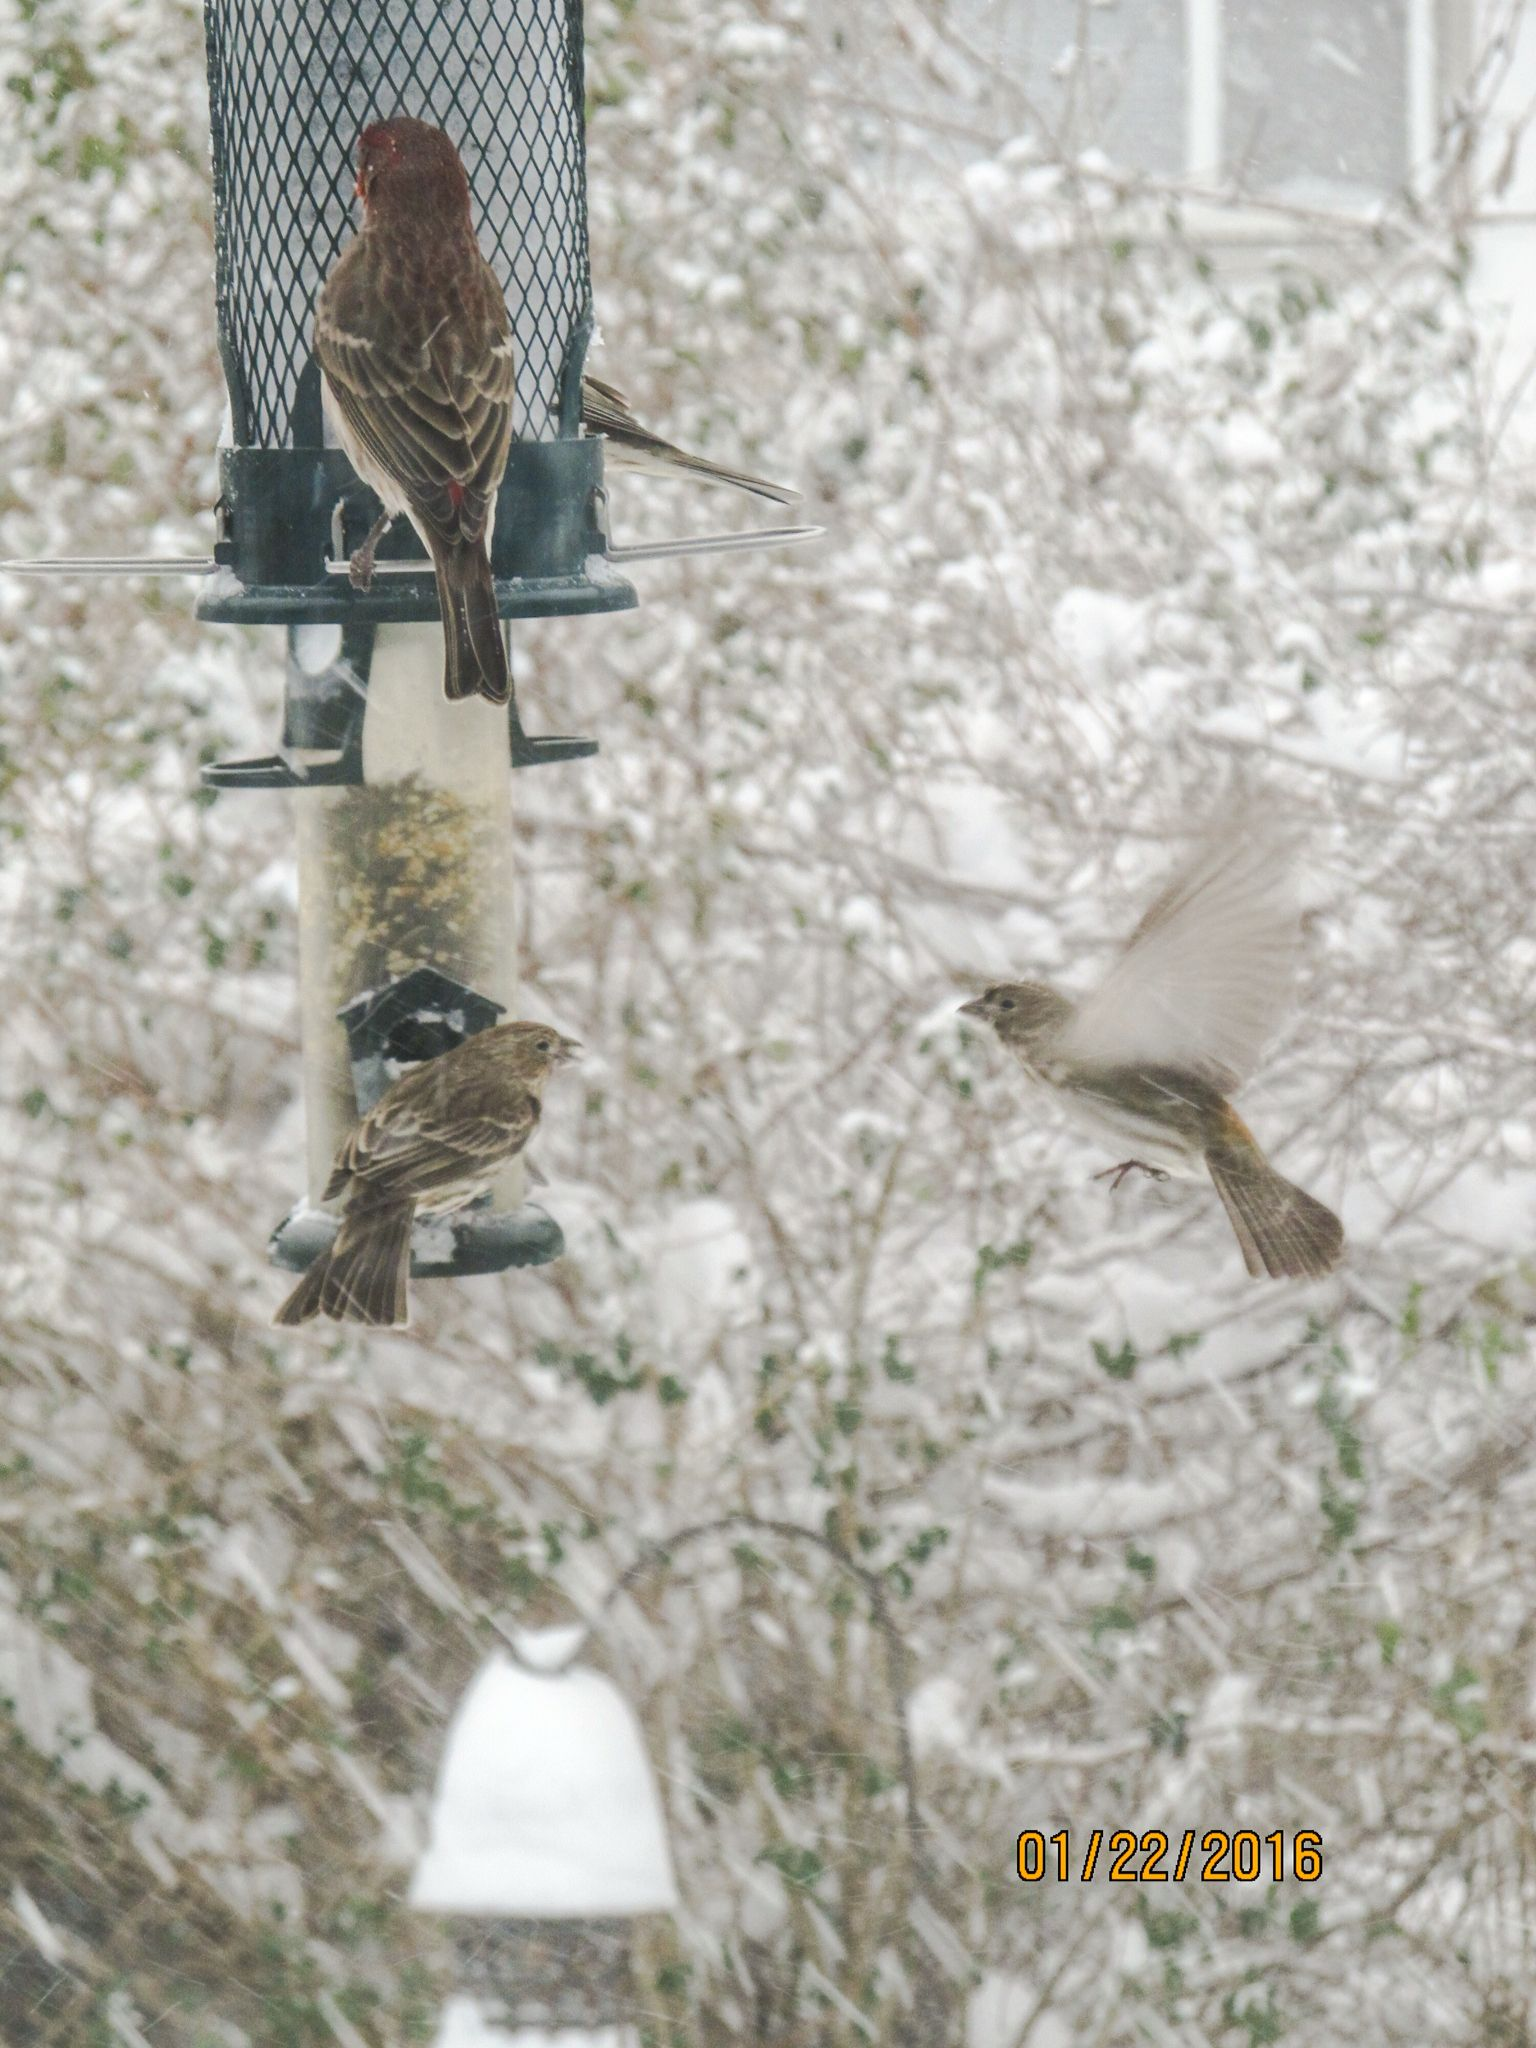 Flying during a snowstorm